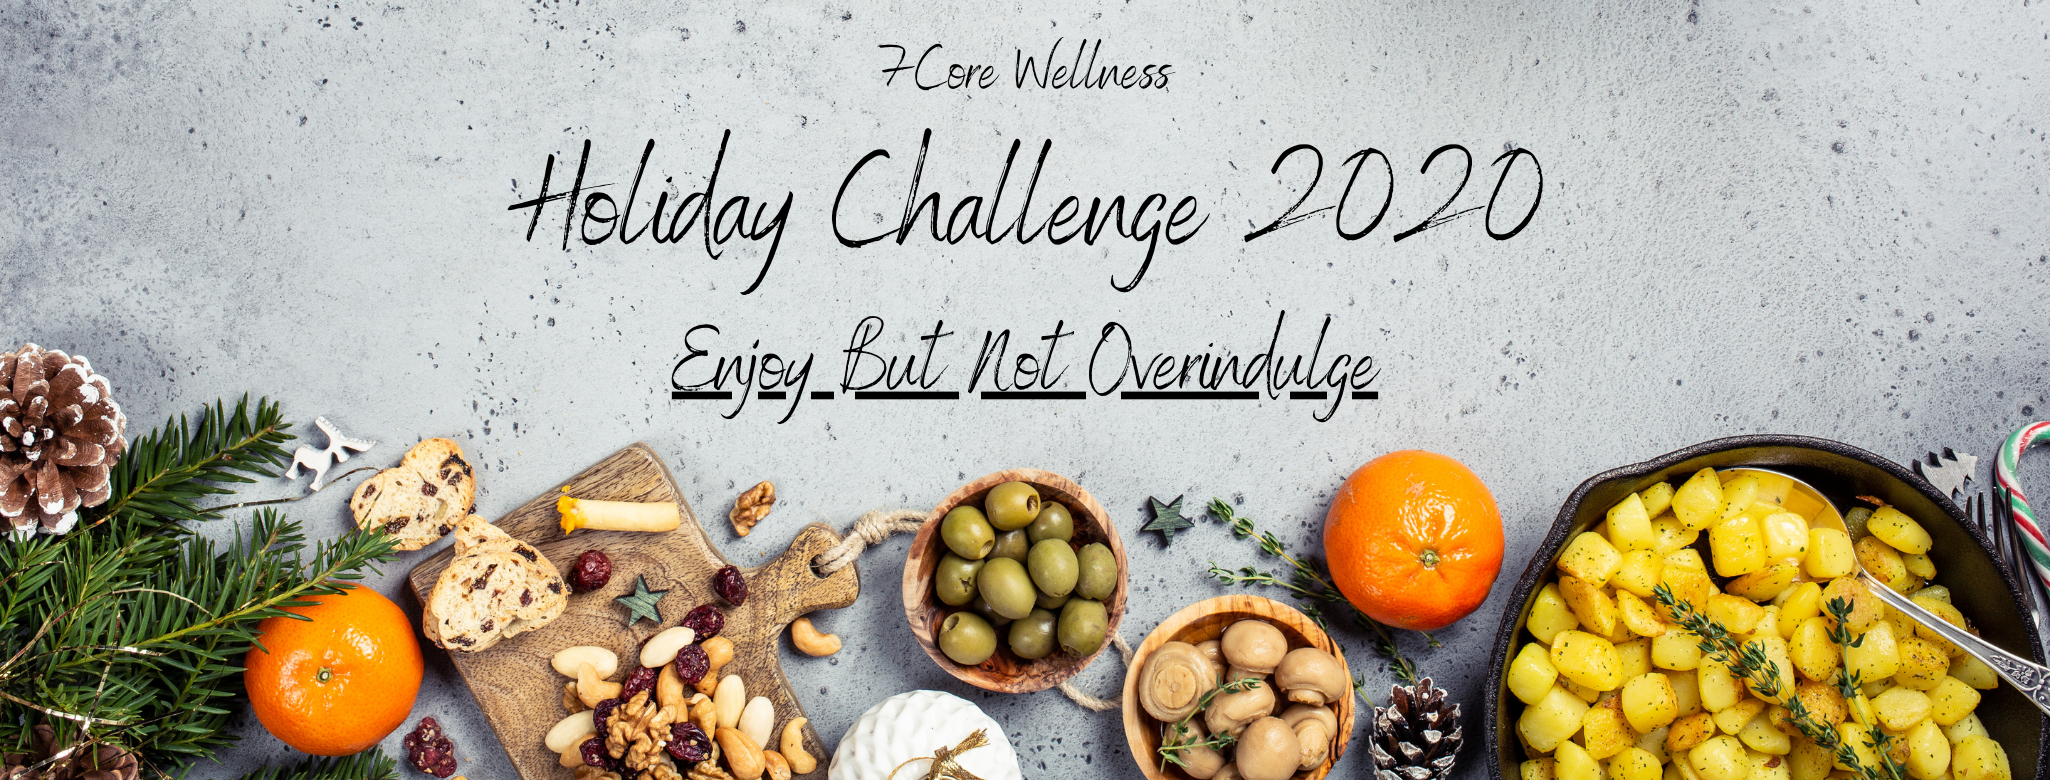 Sign: Holiday Challenge 2020 Enjoy But Not Overindulge